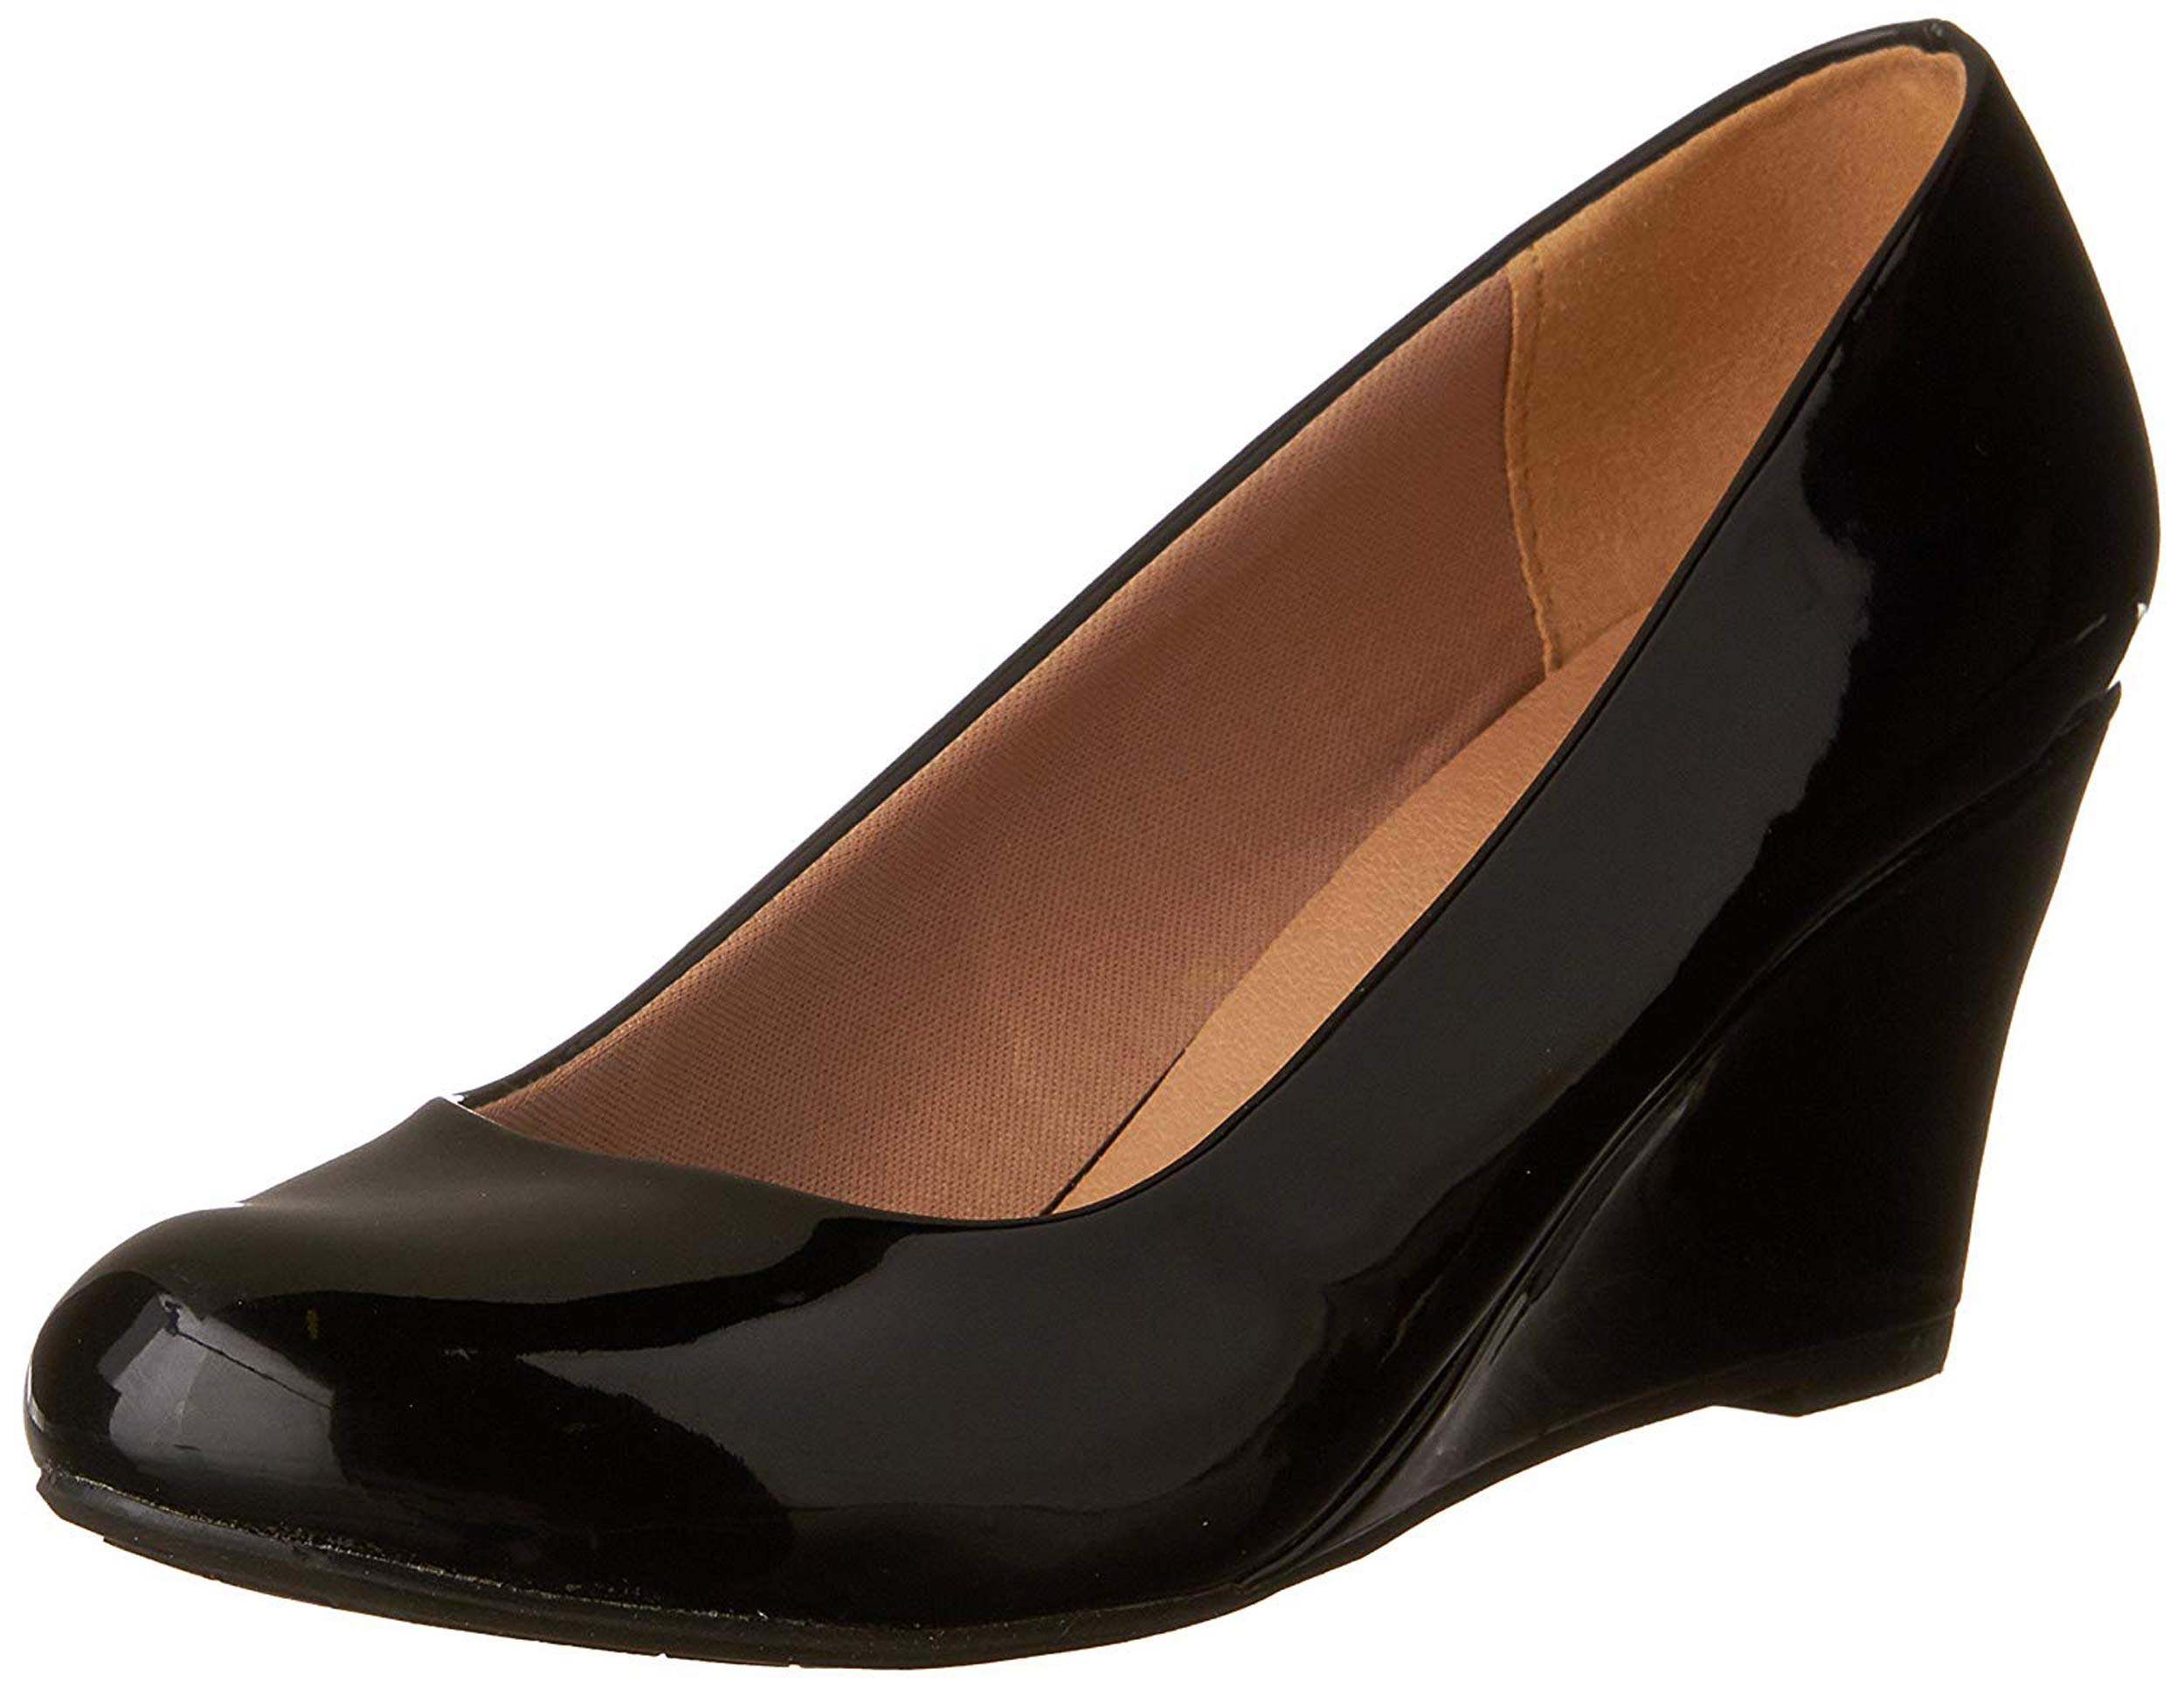 Forever Link Women's DORIS-22 Patent Round Toe Wedge Pumps Black 10 by Forever Link